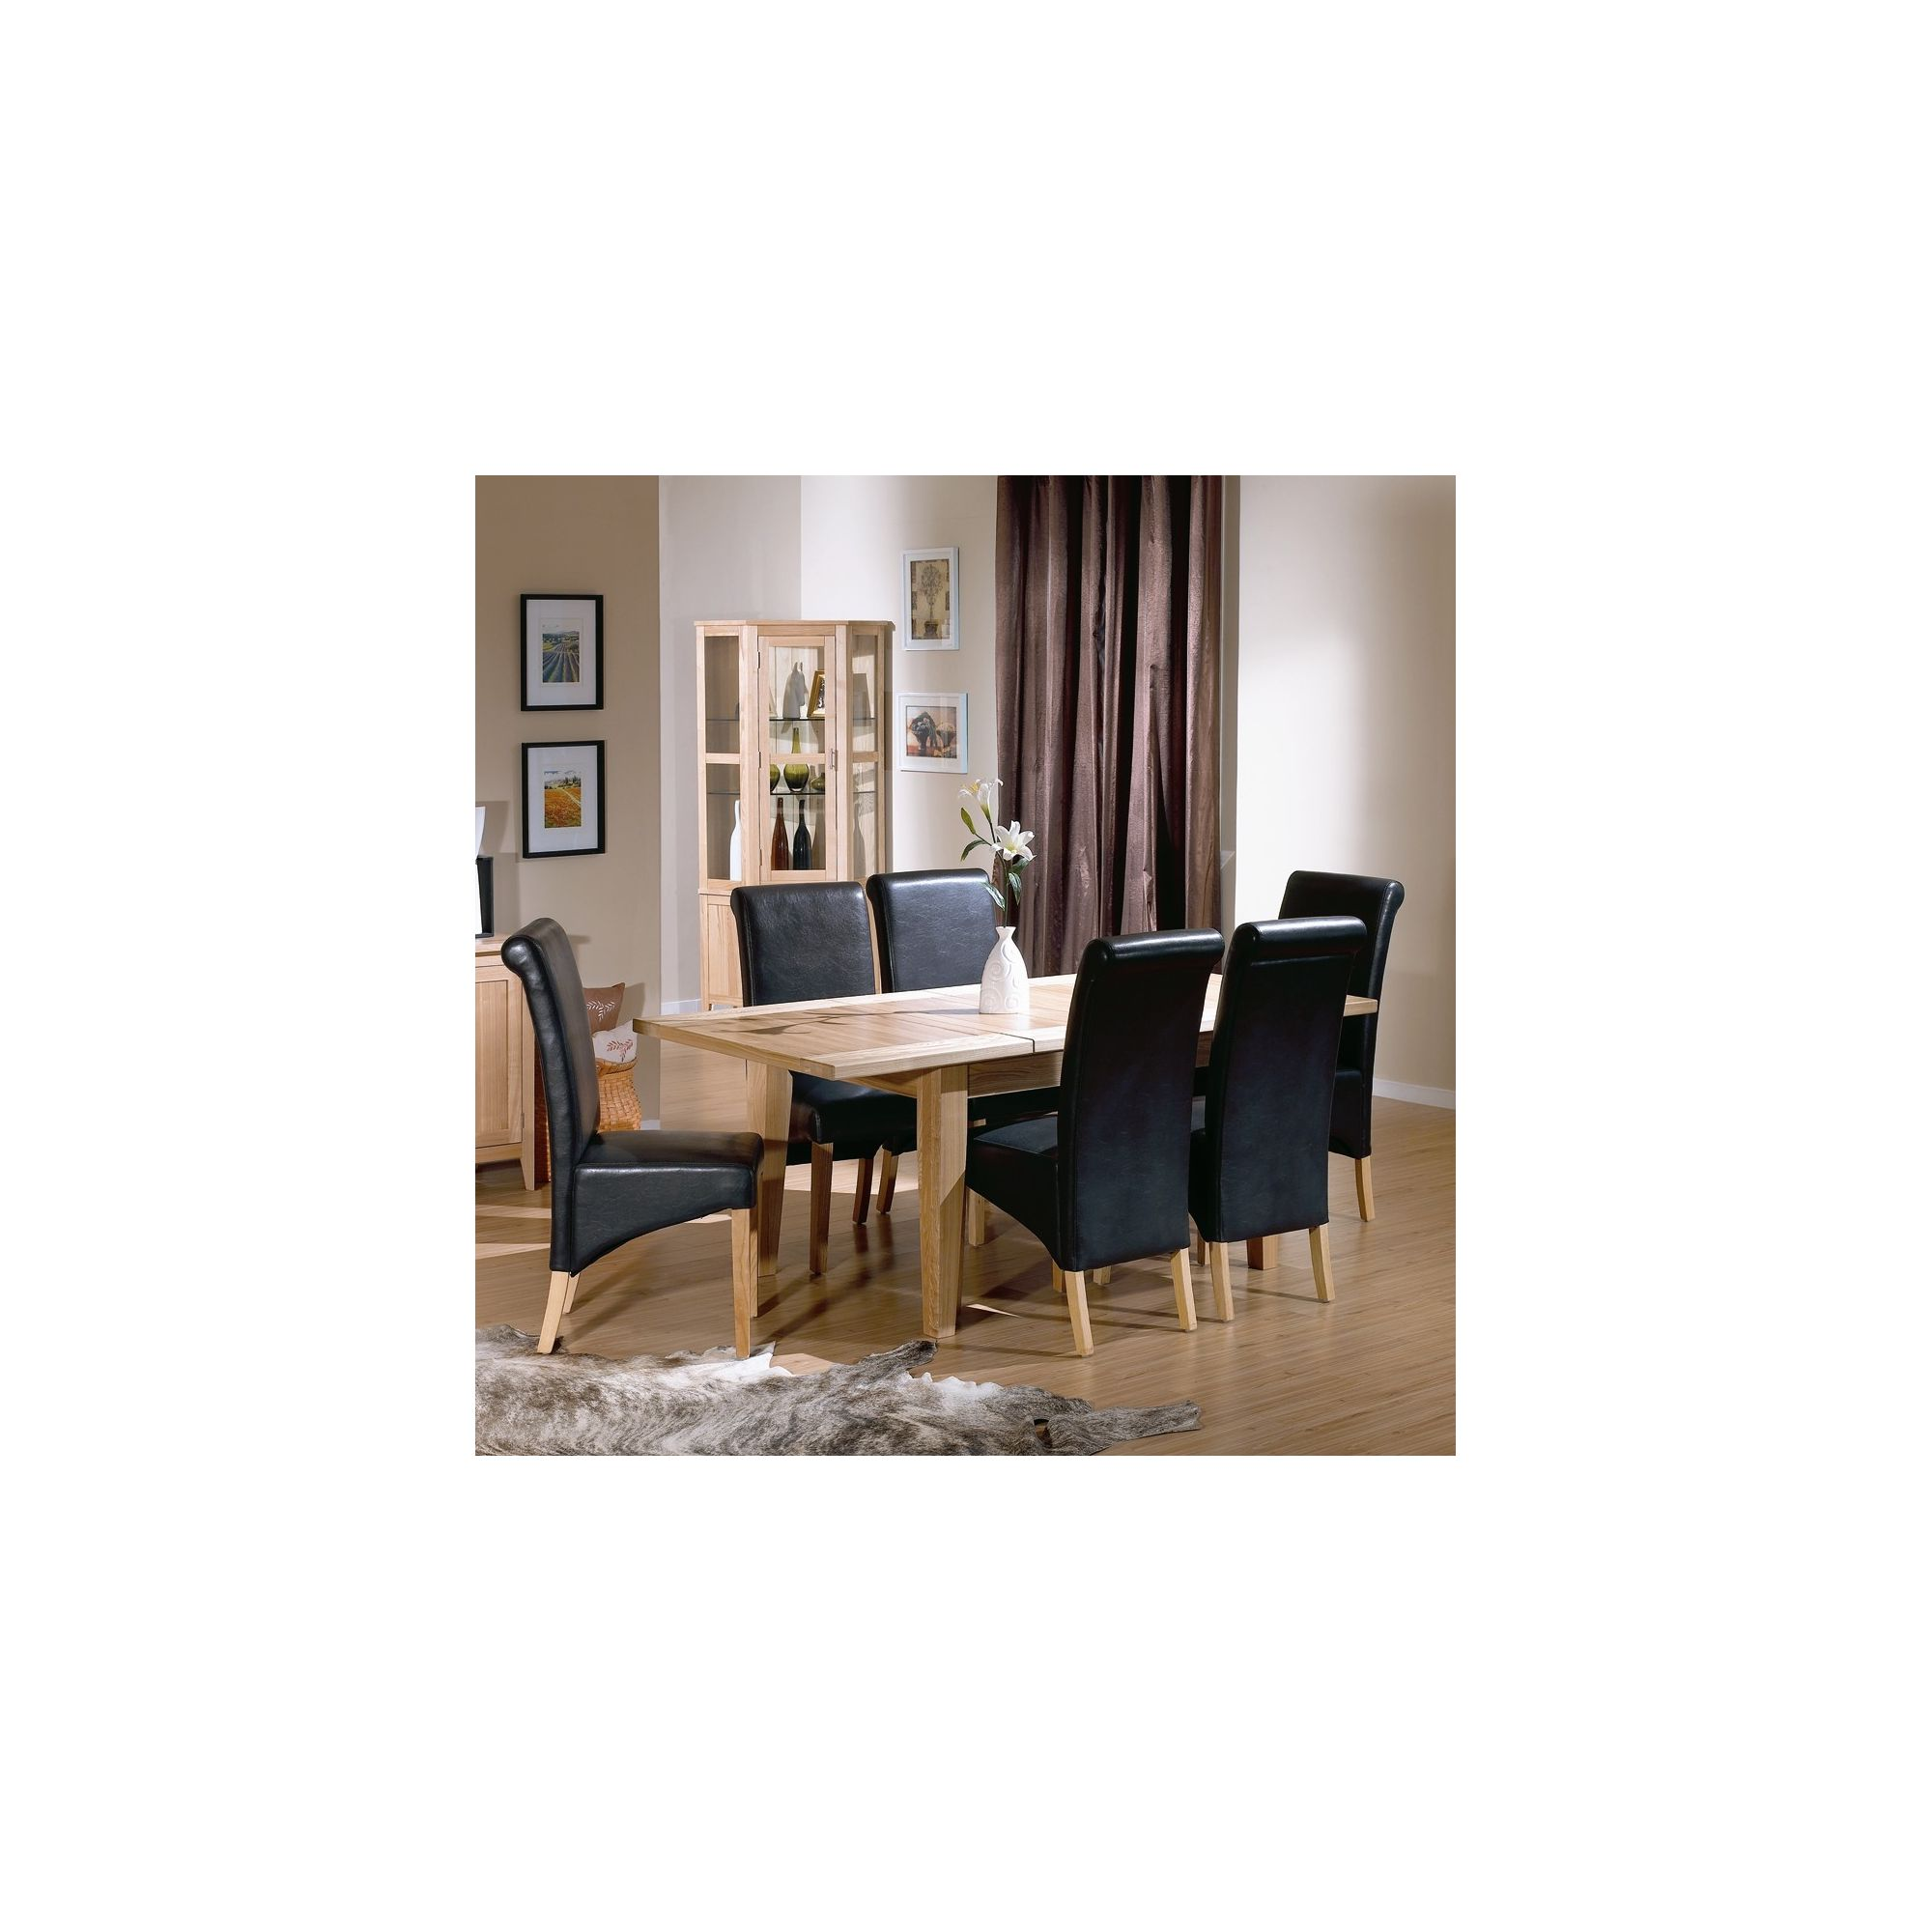 Tesco Direct Kelburn Furniture Carlton Ash Extending Dining Room Set With Bi Cast Leather